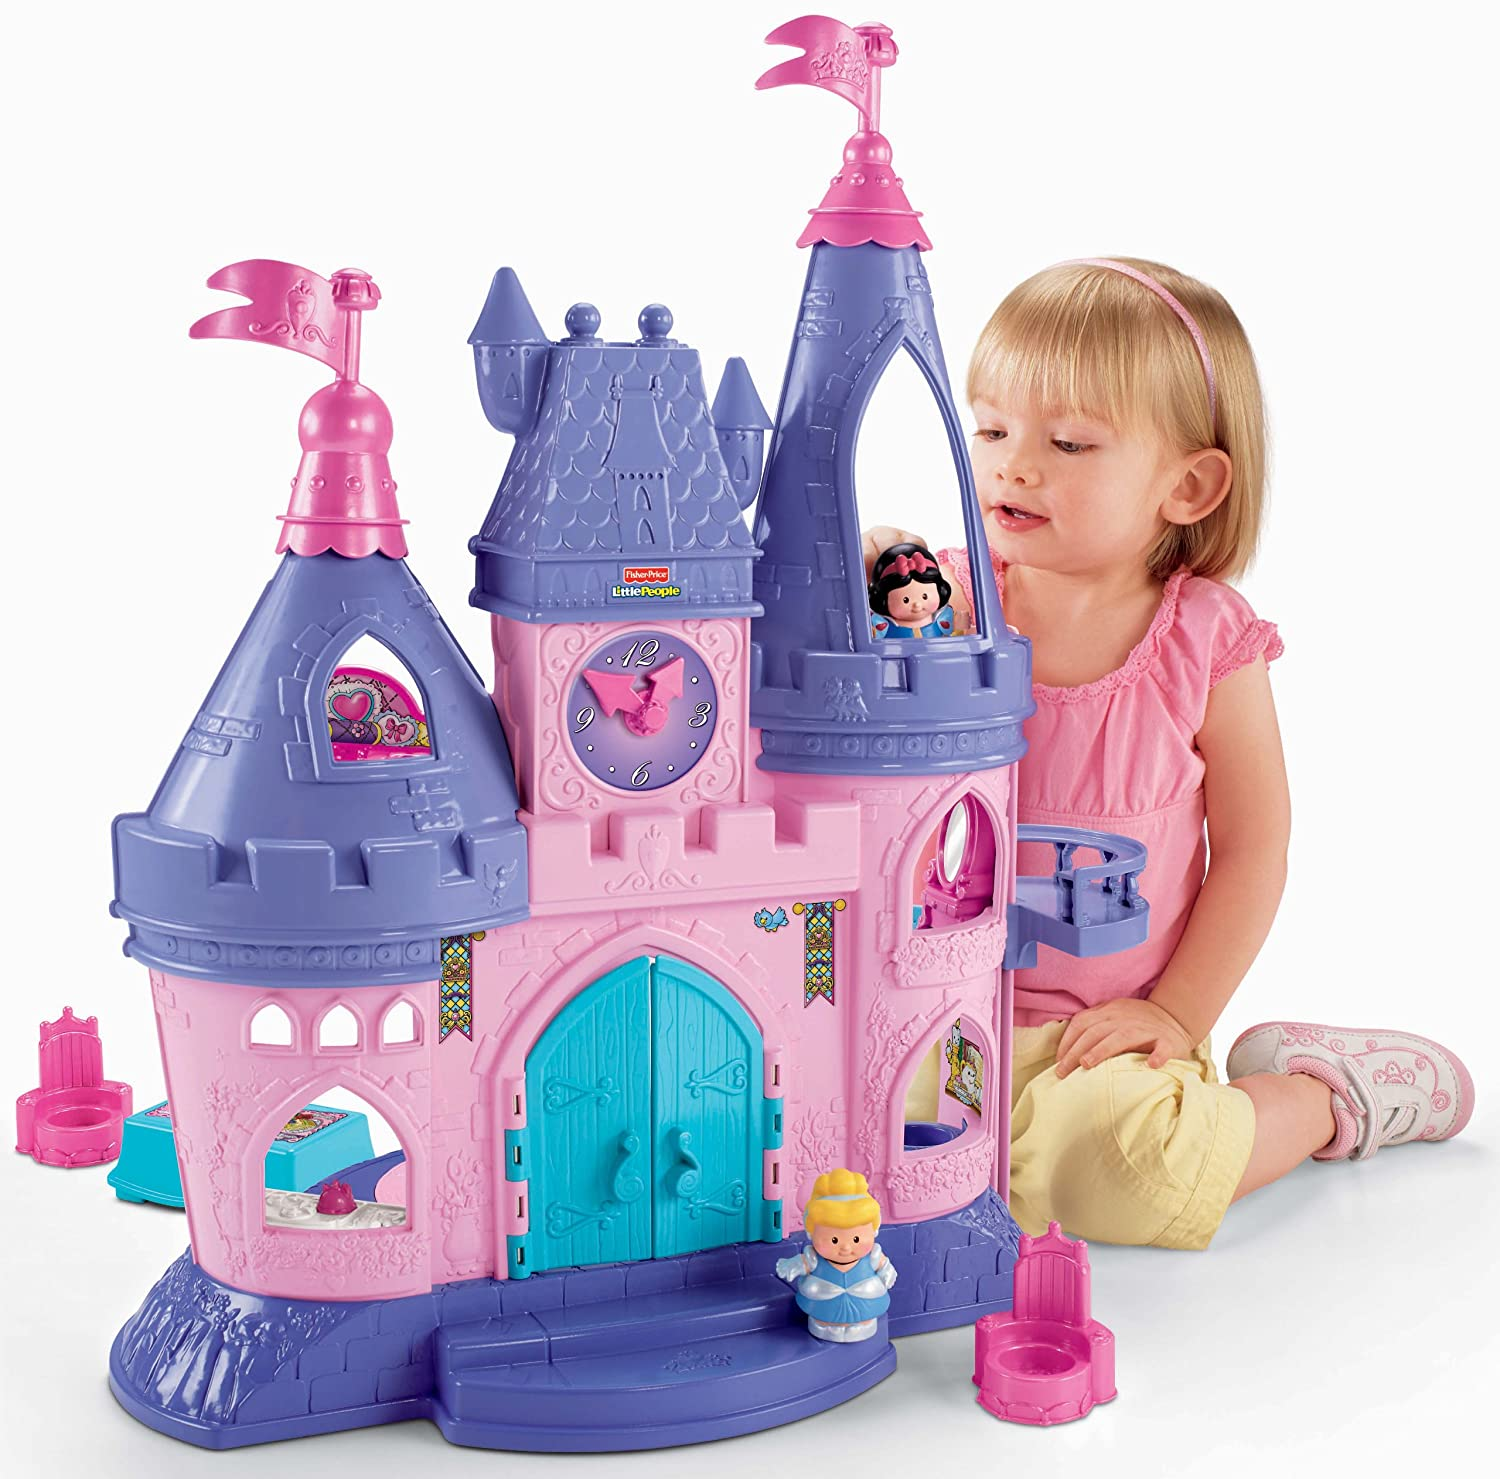 Baby Girl Toys : Christmas gifts hot toys for toddler girls ages